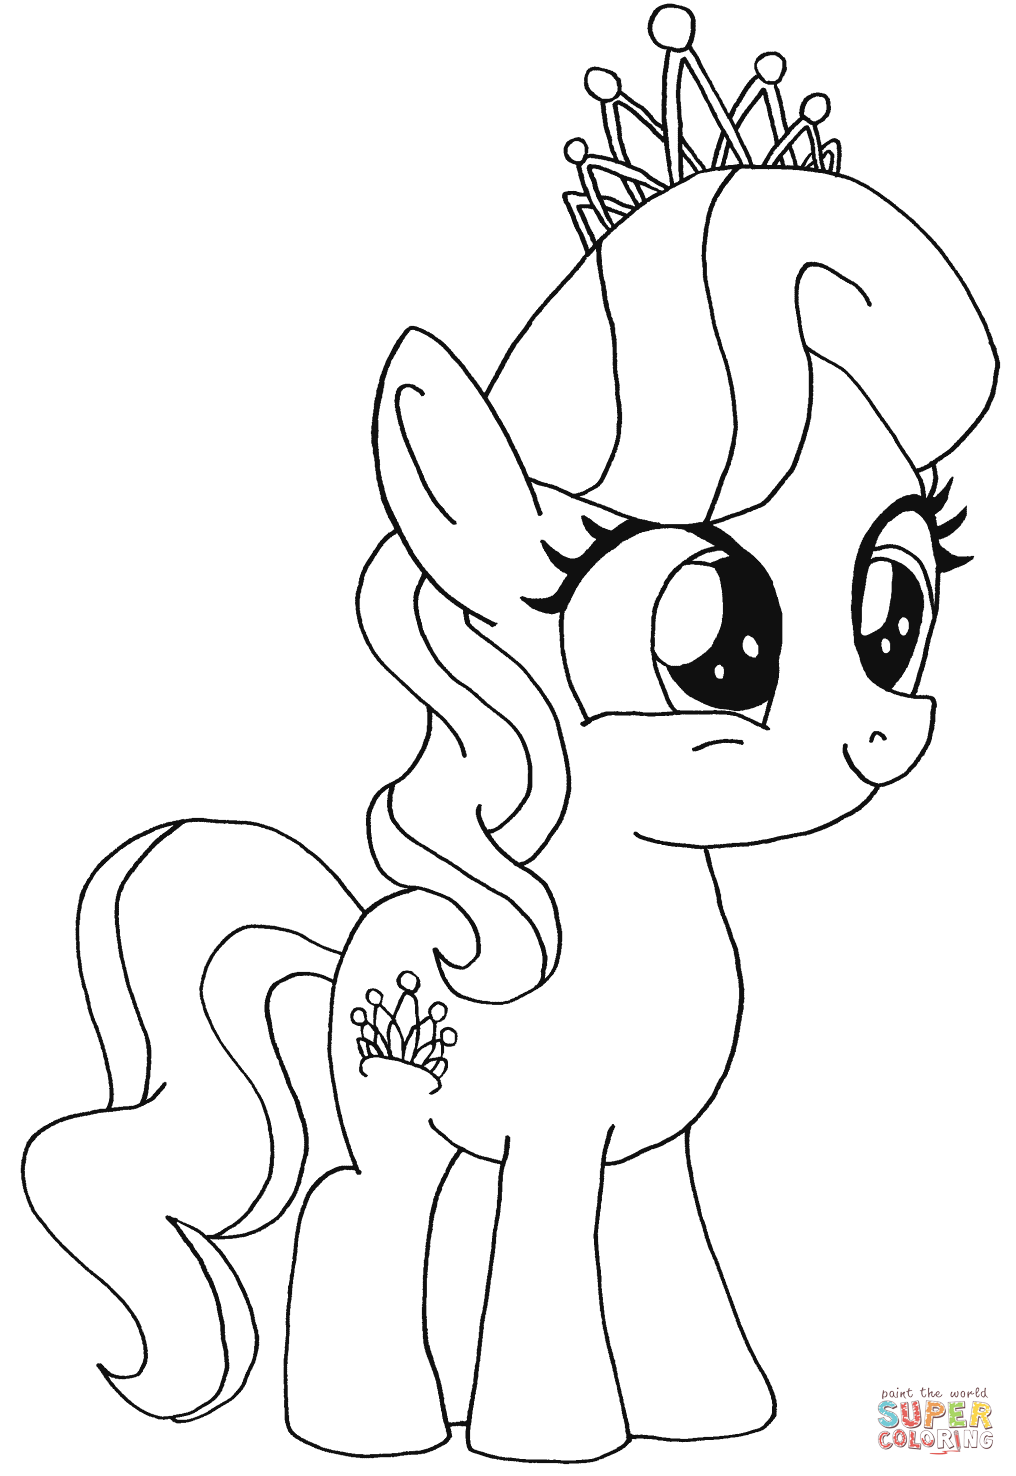 My little pony wonderbolts coloring pages - My Little Pony Wonderbolts Coloring Pages 85